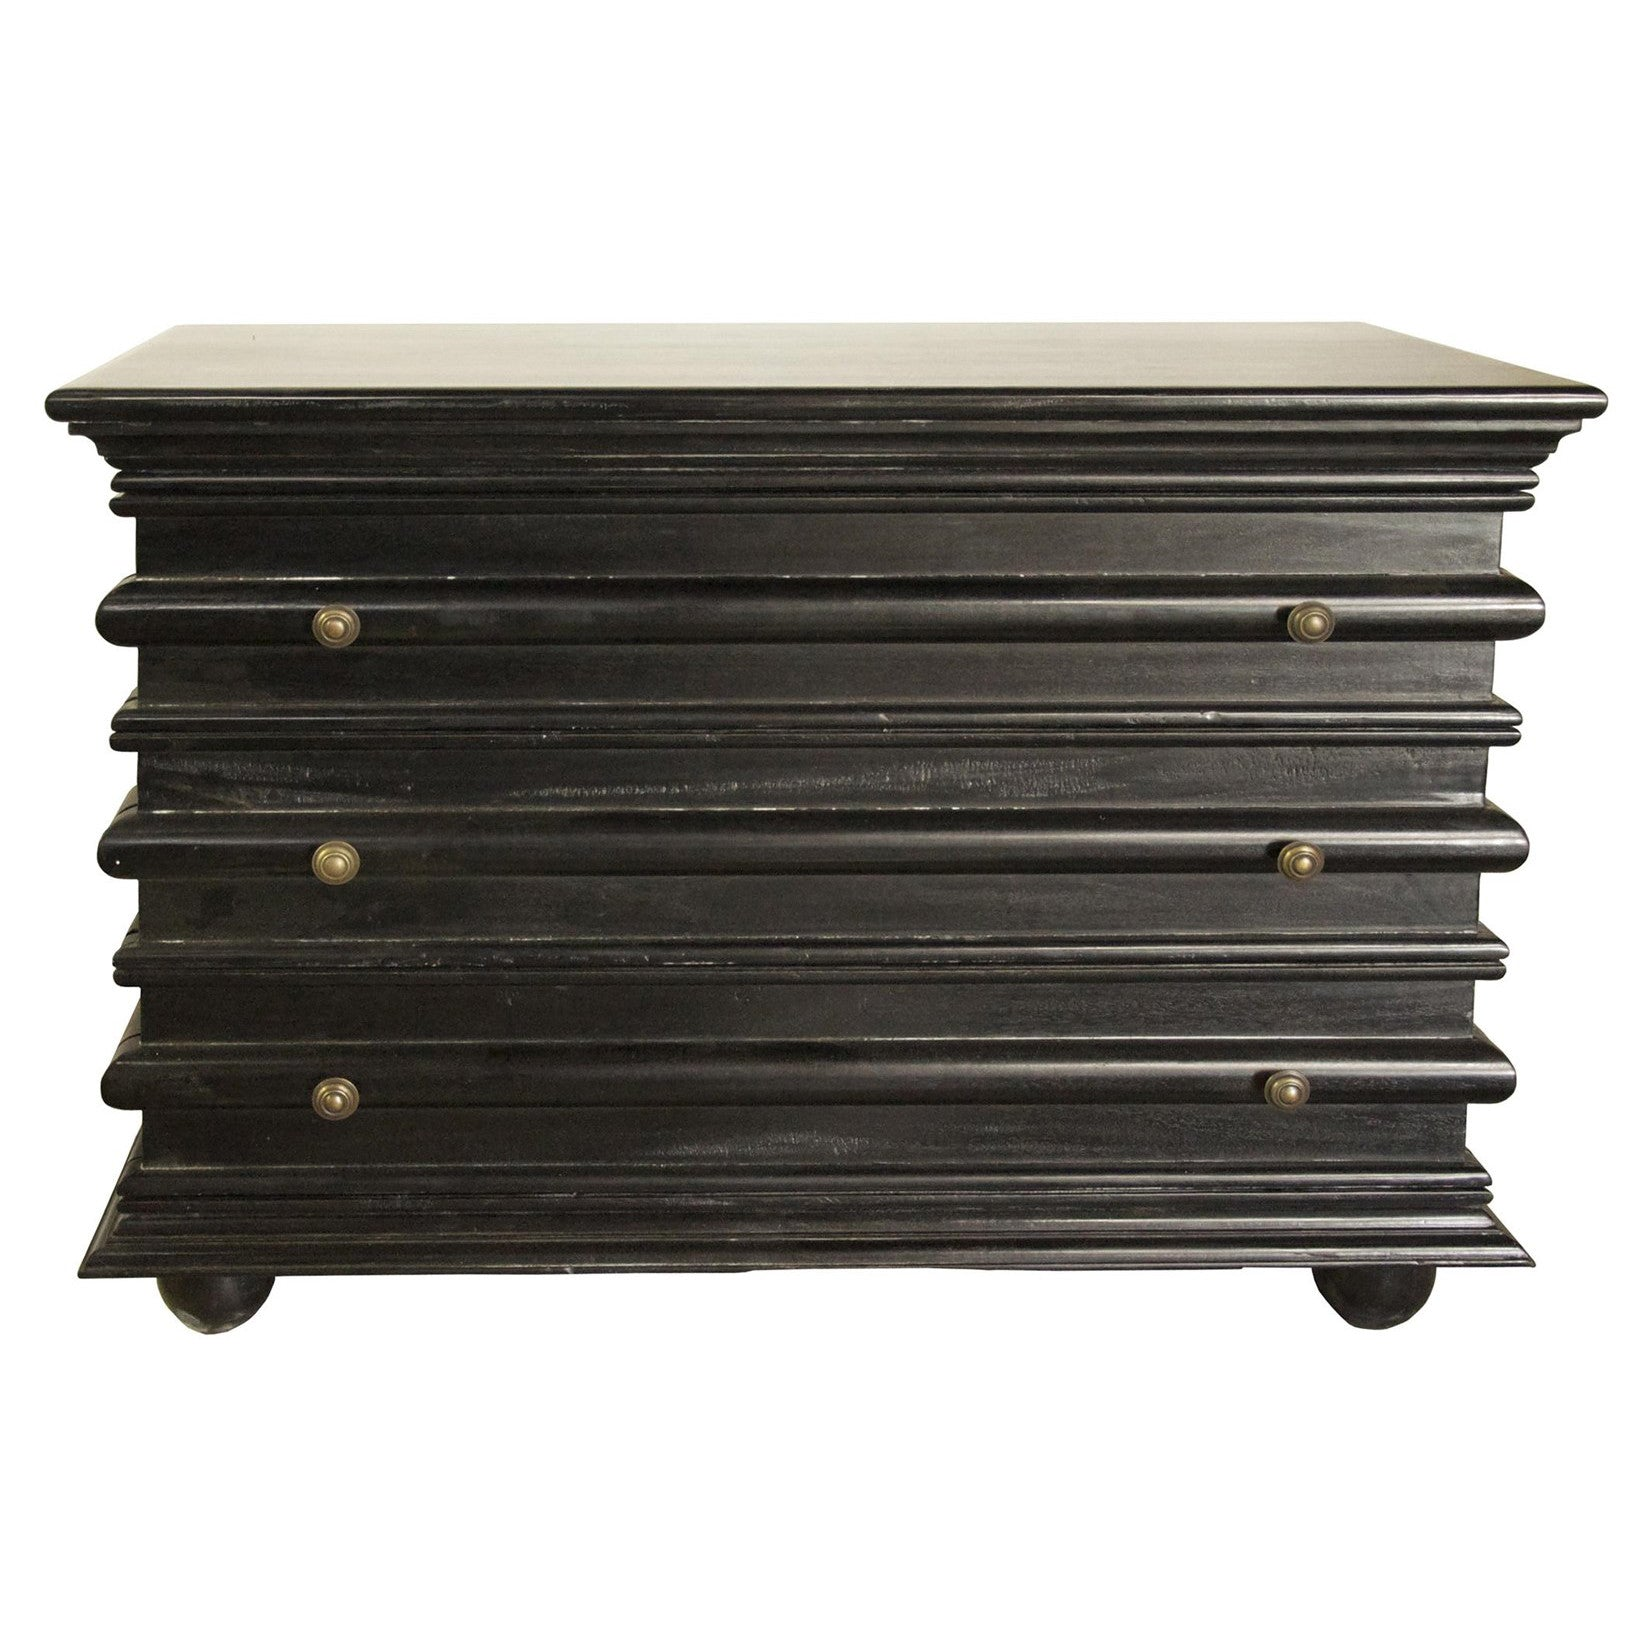 Noir - Ascona Small Chest, Hand Rubbed Black